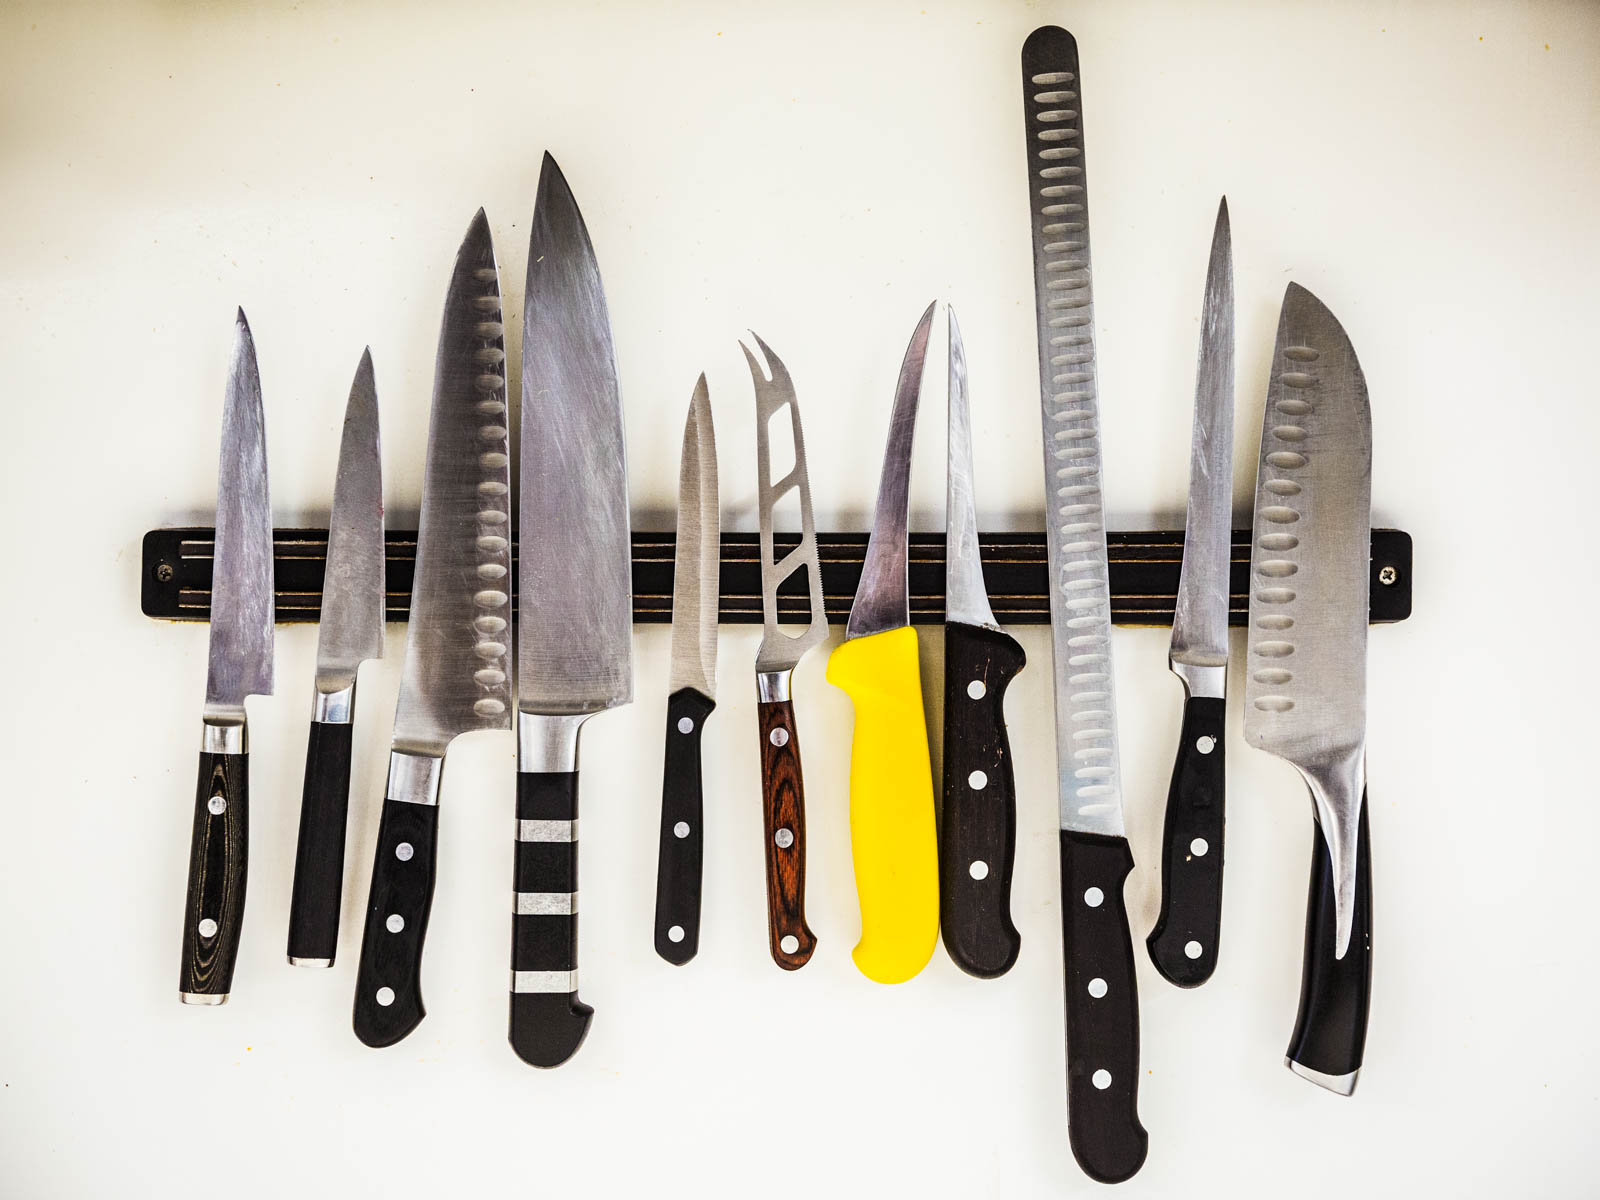 The 9 Best Knife Sets for Every Kitchen, According to Thousands of Reviews